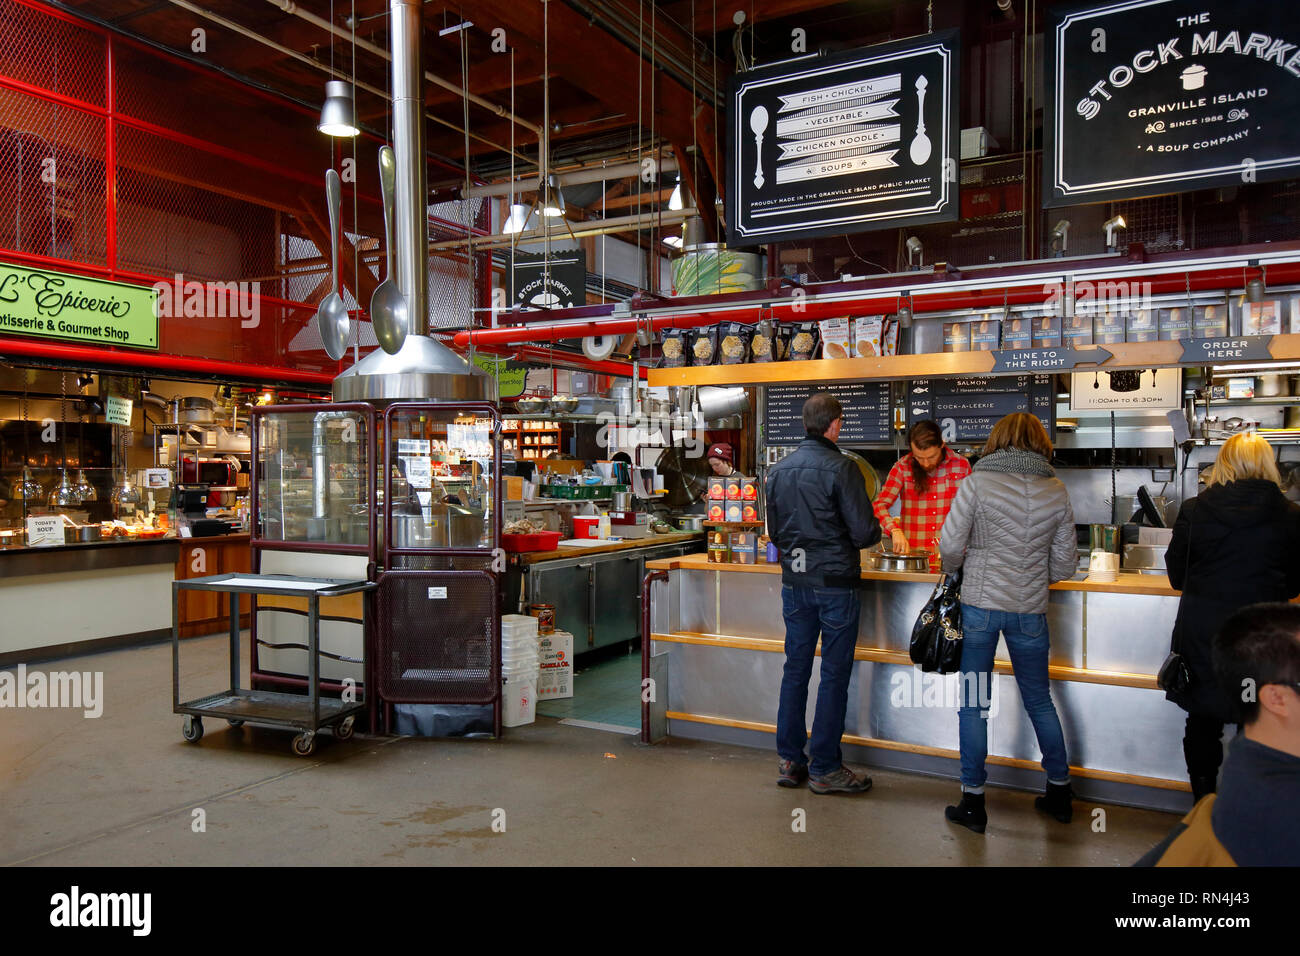 the-stock-market-and-lepicerie-at-granville-island-public-market-vancouver-RN4J43.jpg